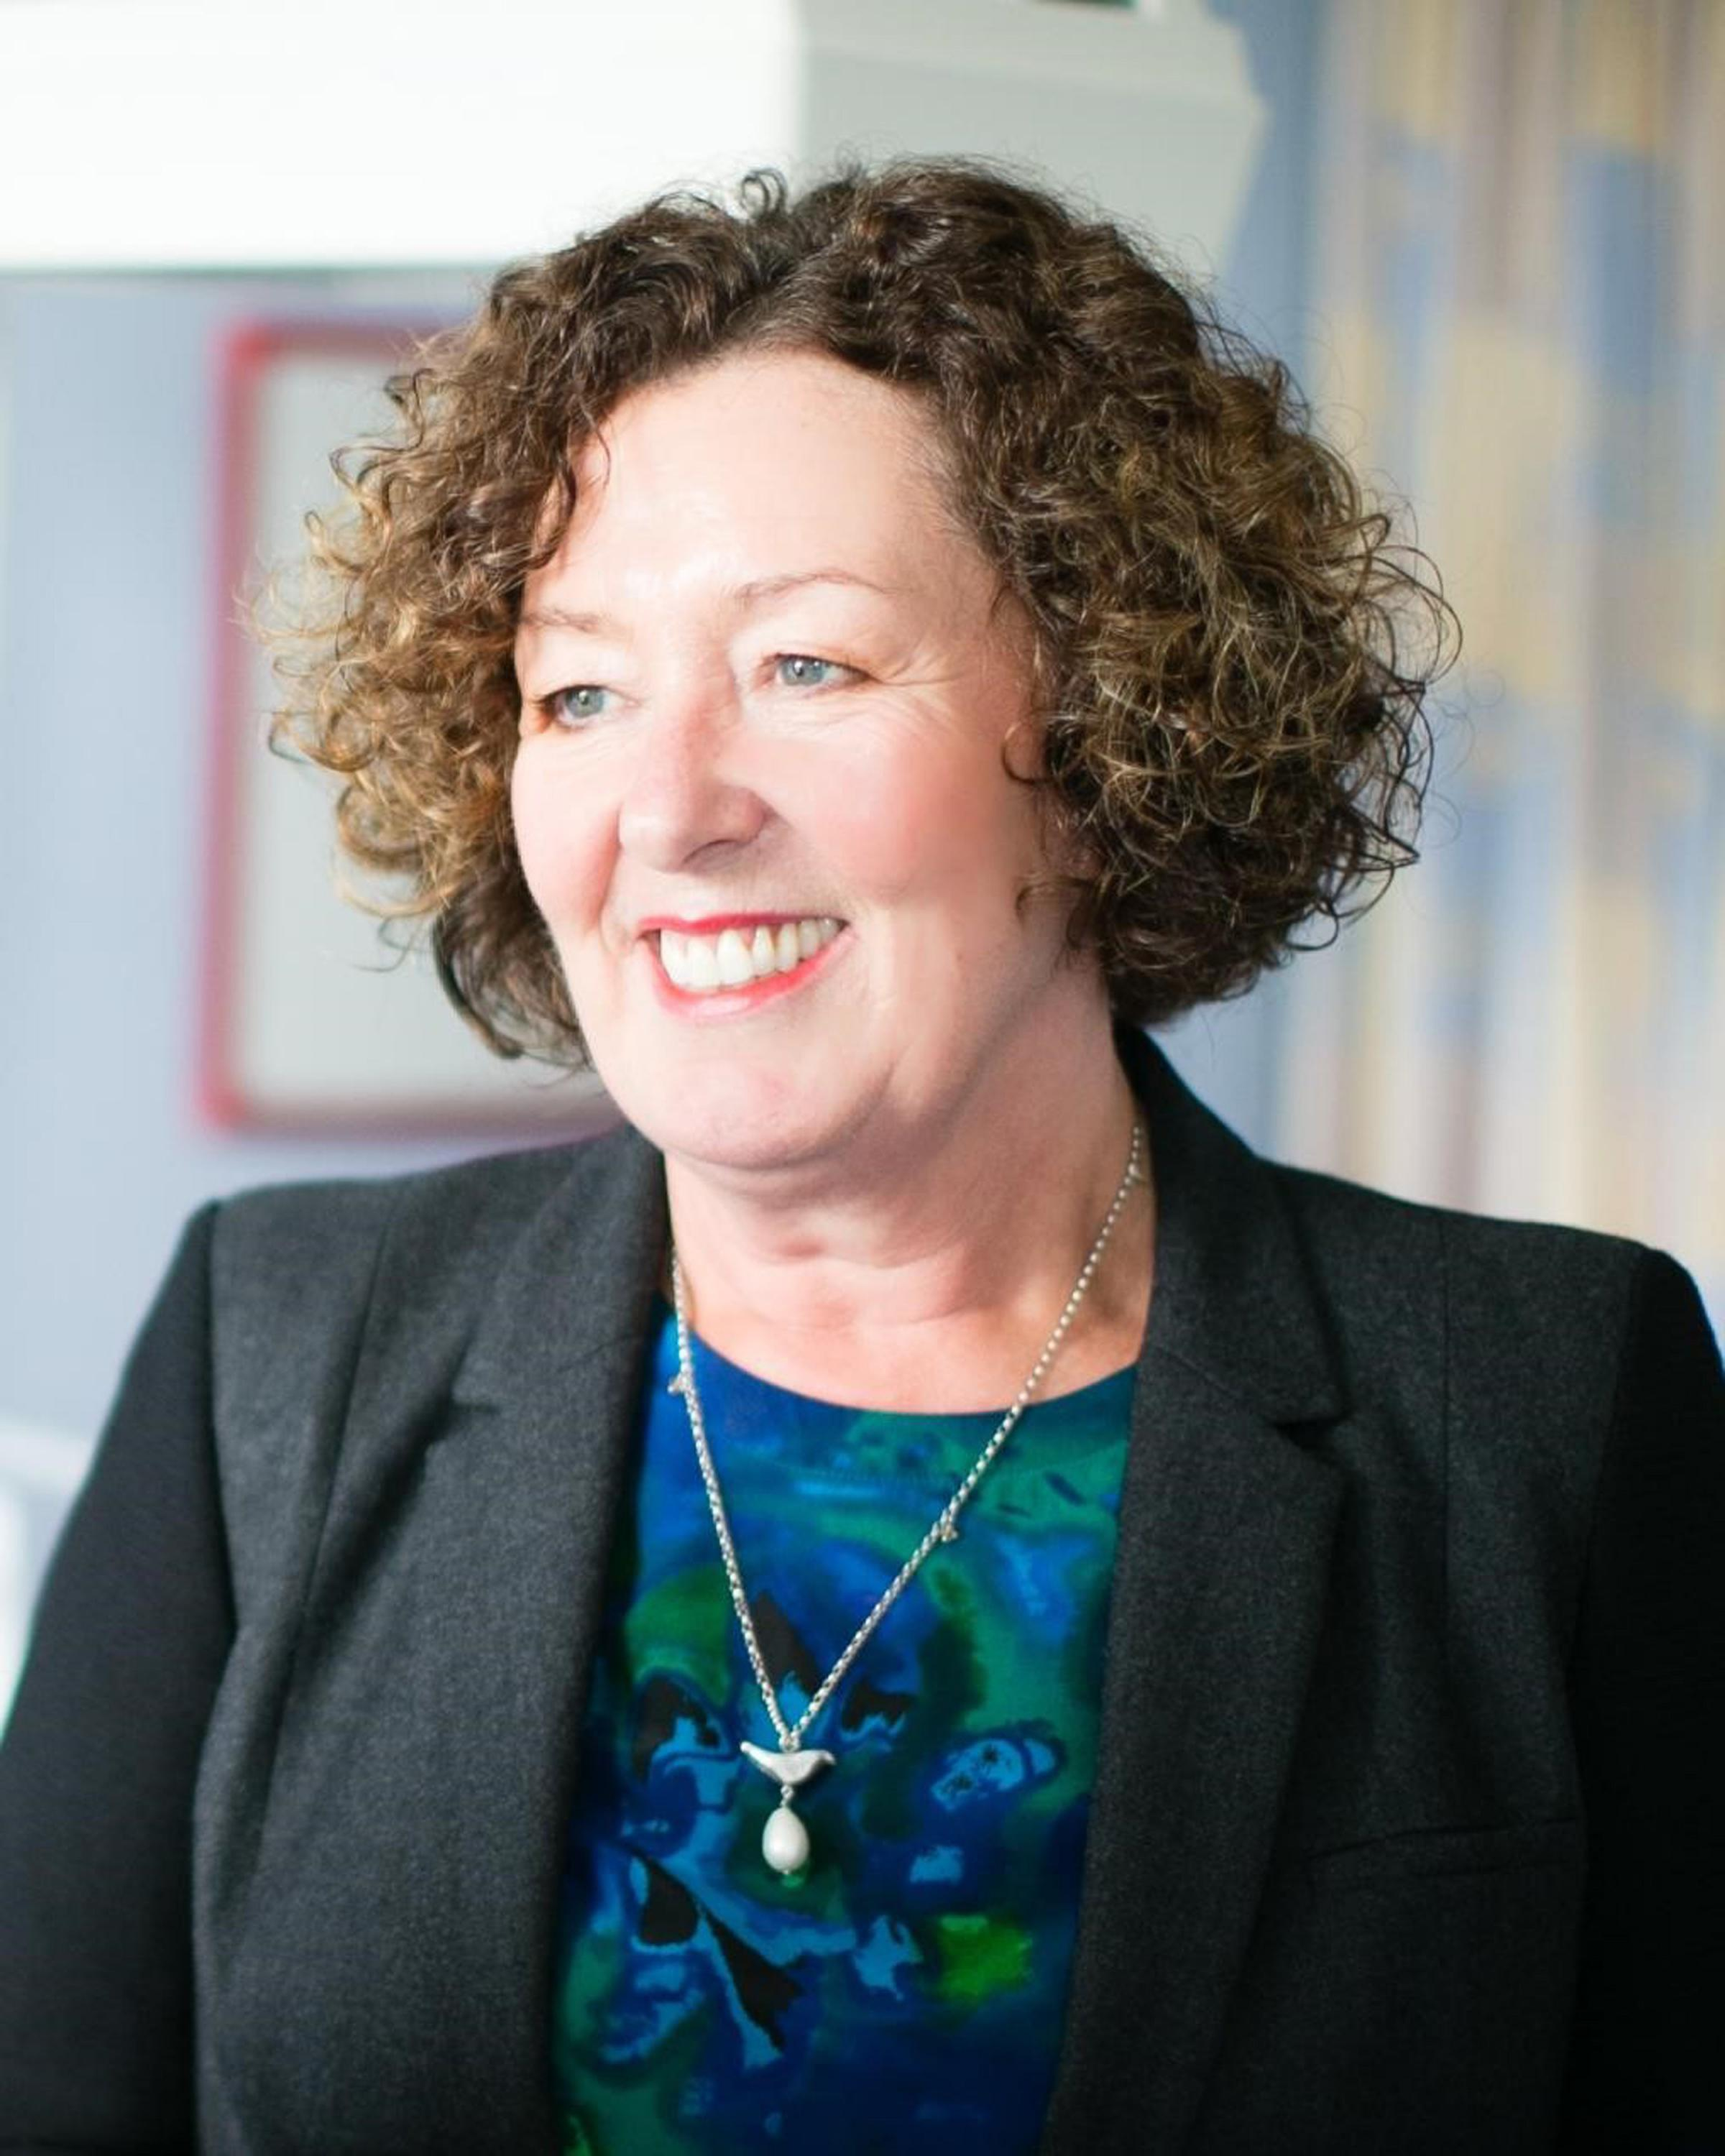 APPOINTED: Dame Jackie Daniel has been appointed as Chief Executive of the Newcastle Hospitals NHS Foundation Trust.